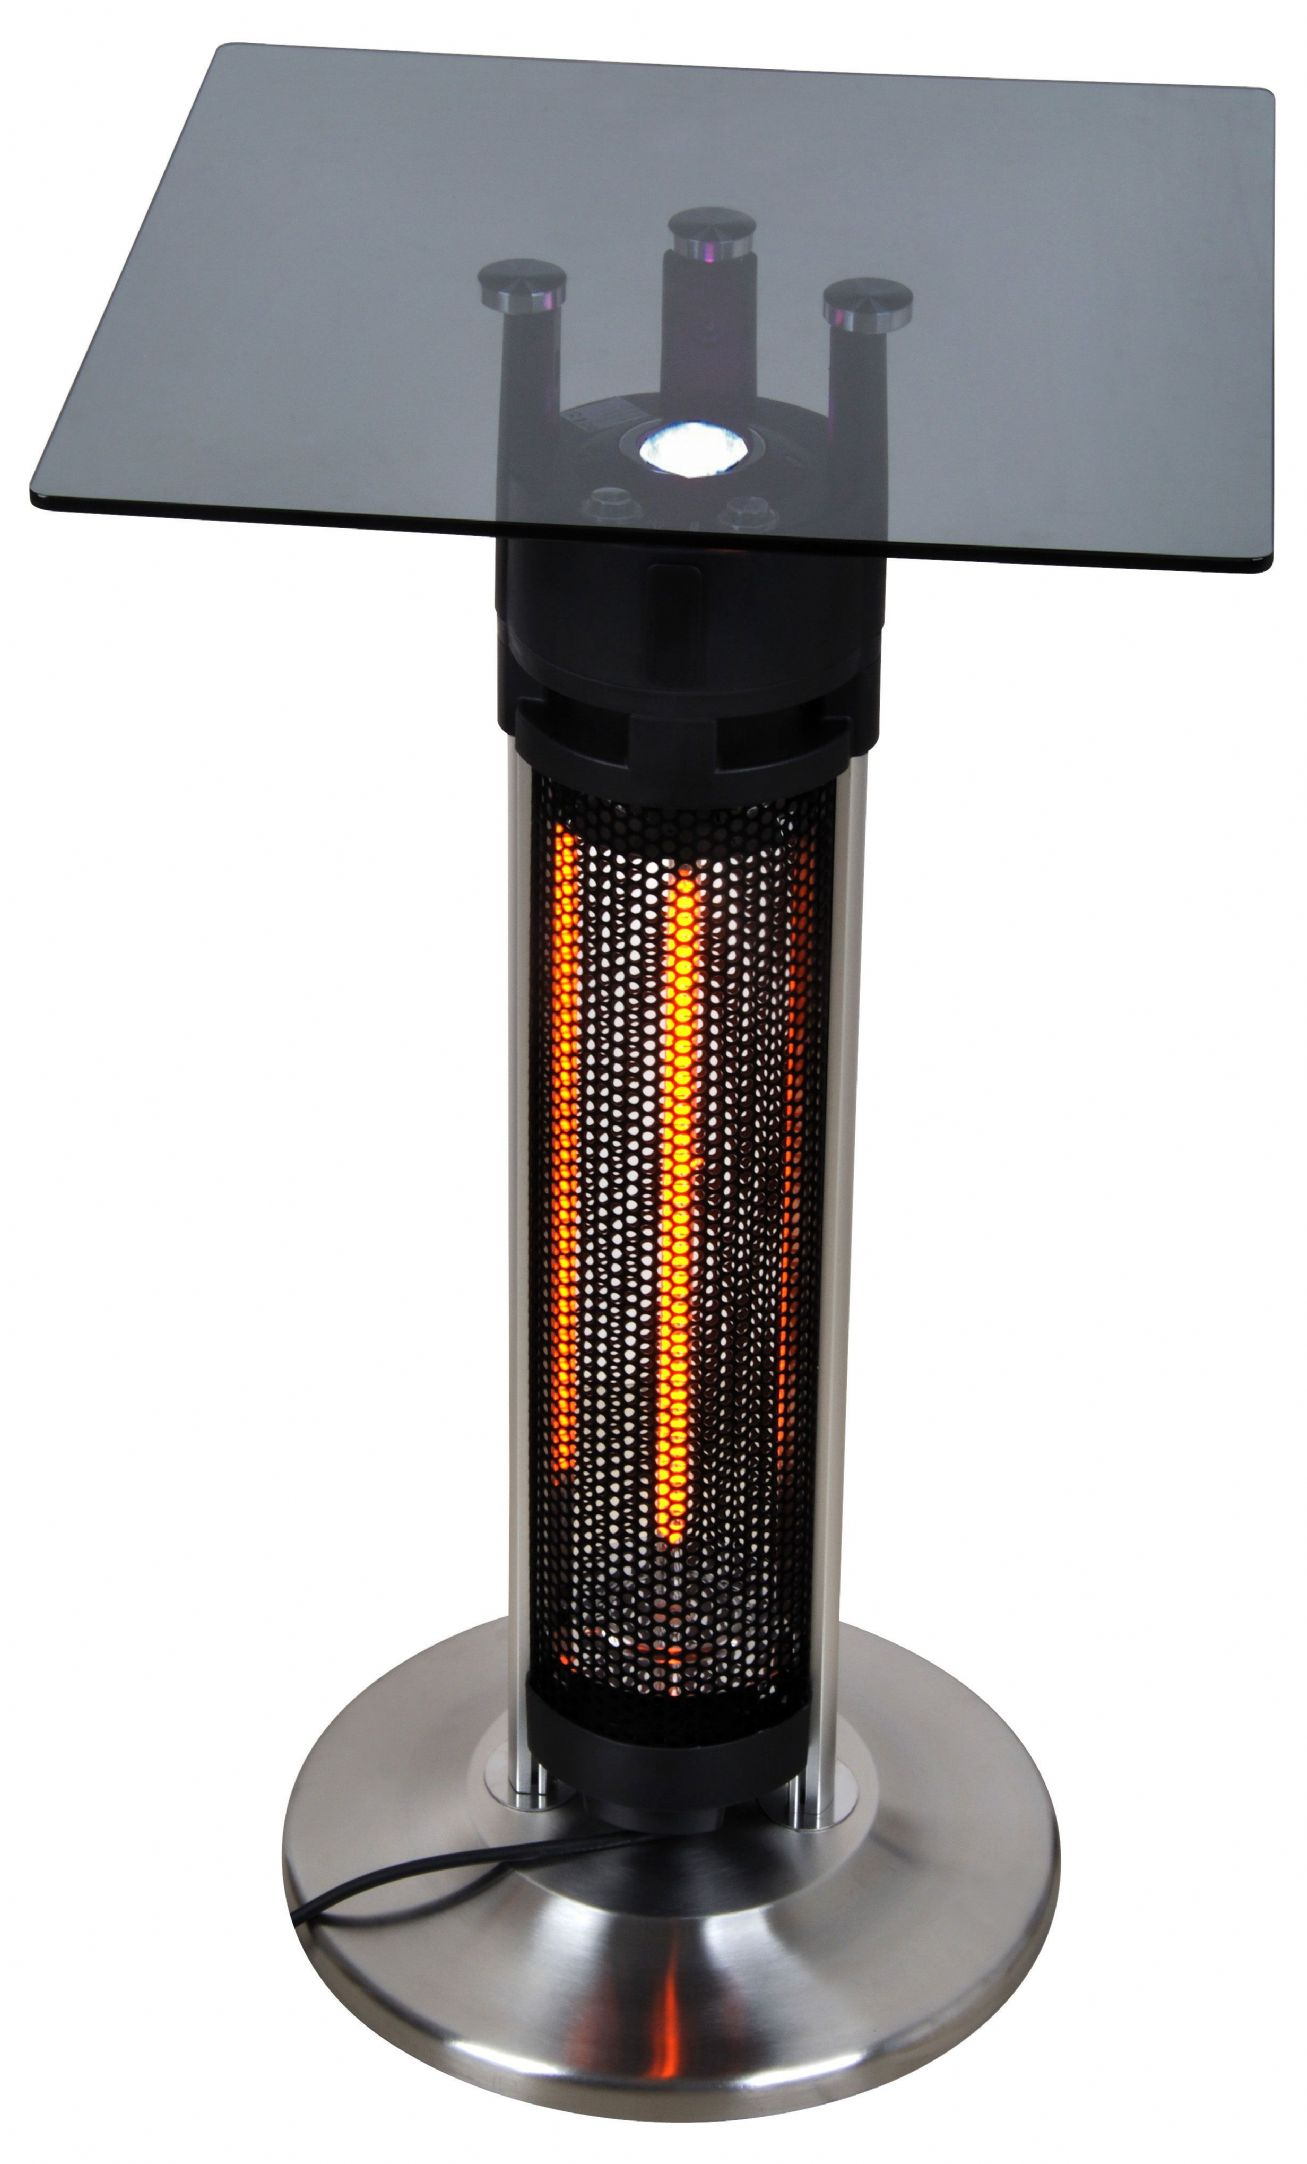 Cyclops Iii 1 6kw Low Glare Infrared Heater Table With